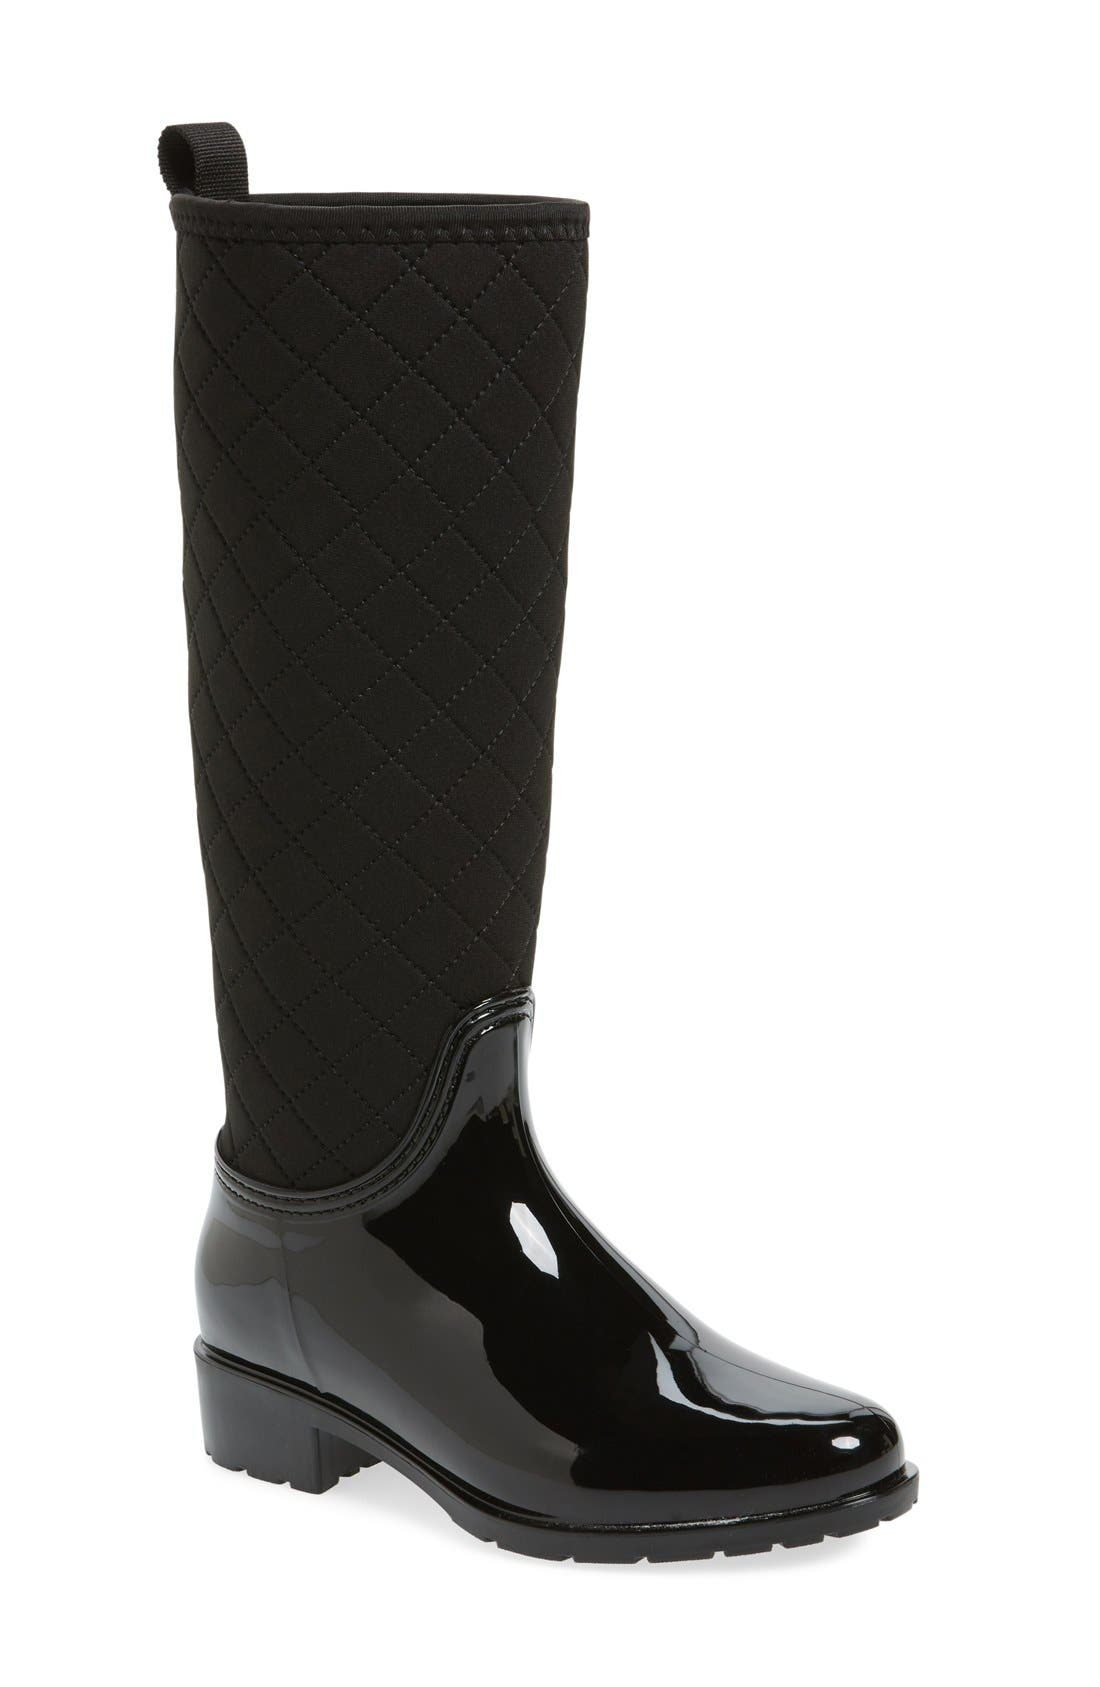 Parma Quilted Tall Waterproof Rain Boot,                         Main,                         color, BLACK